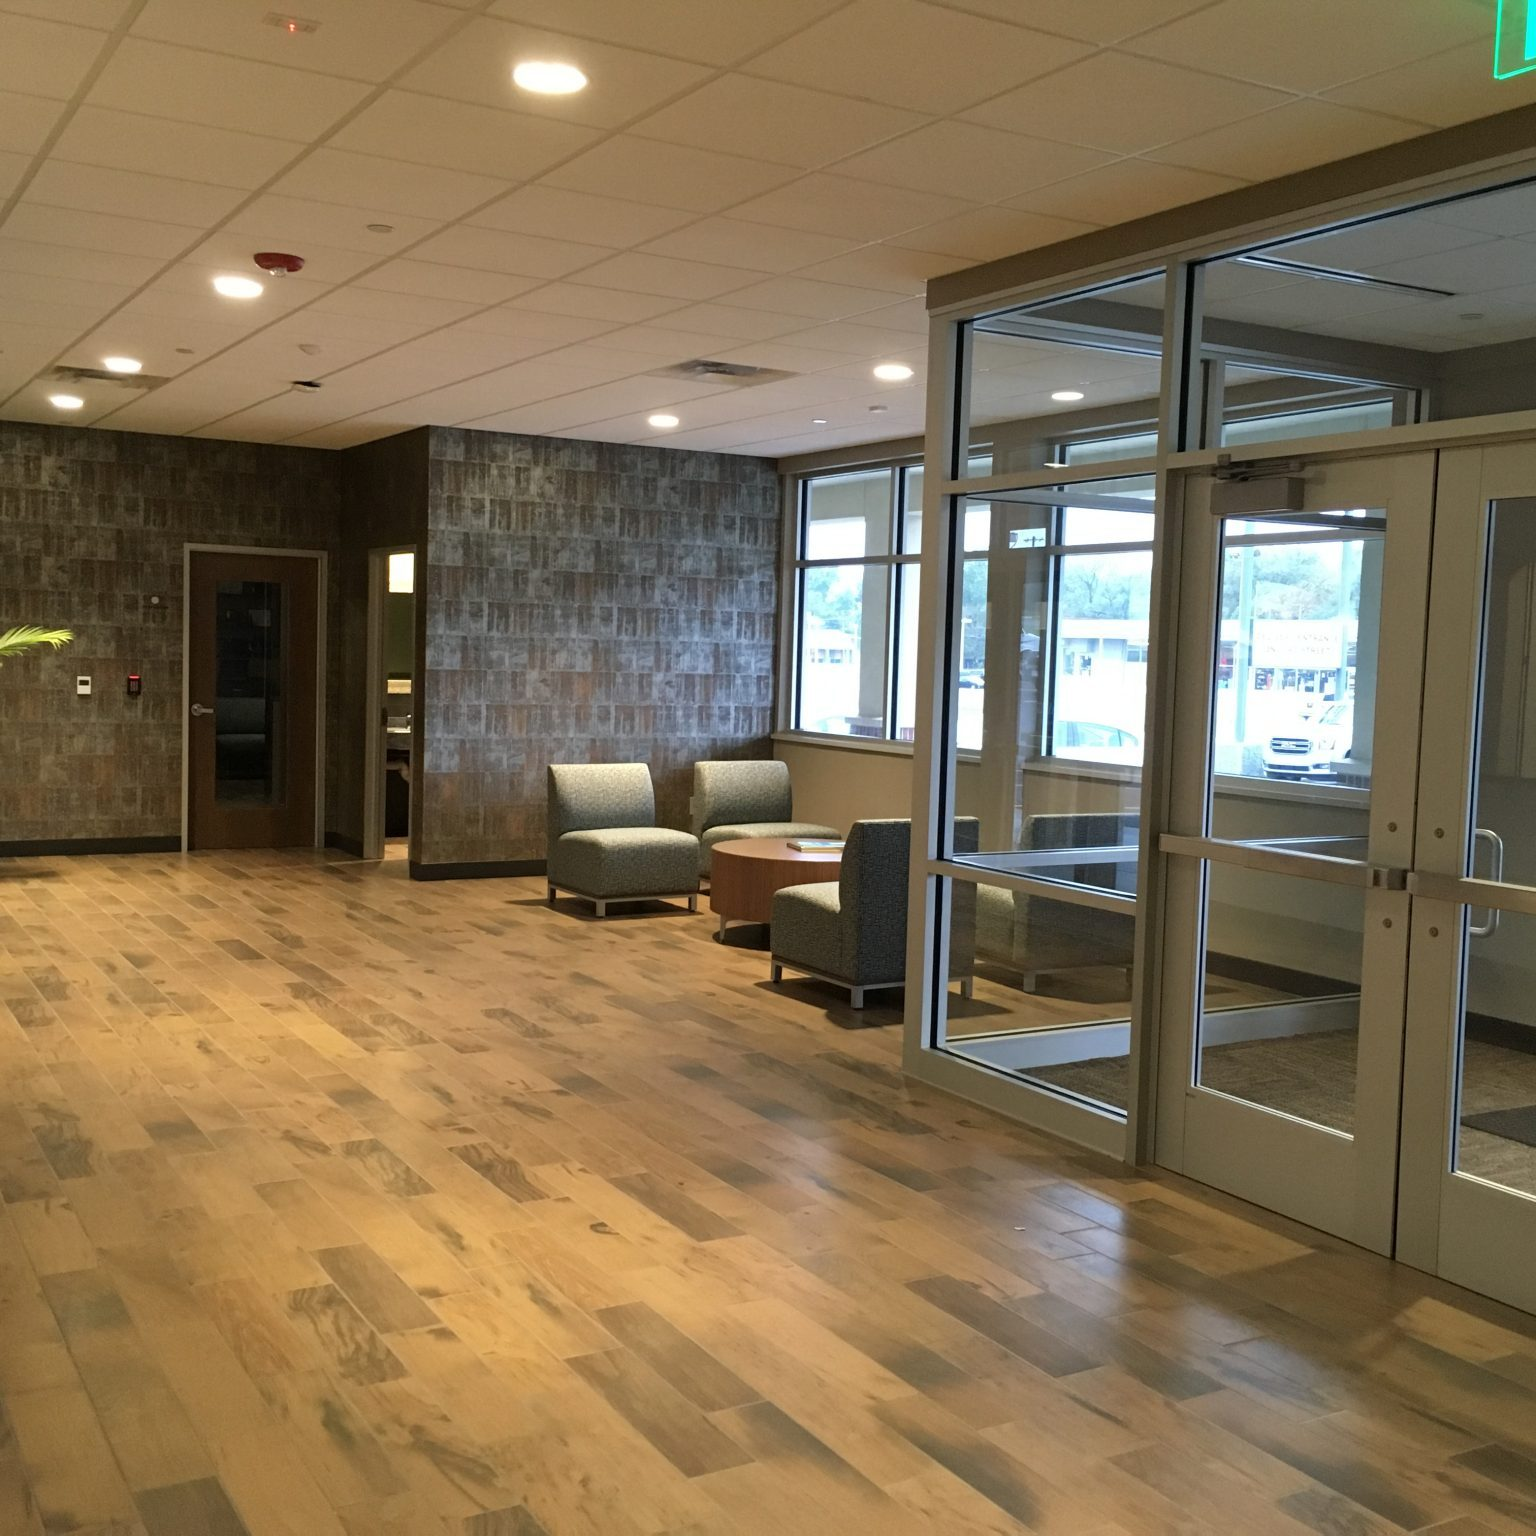 McElroy's Office Remodel | Construction Completed by Kendall Construction